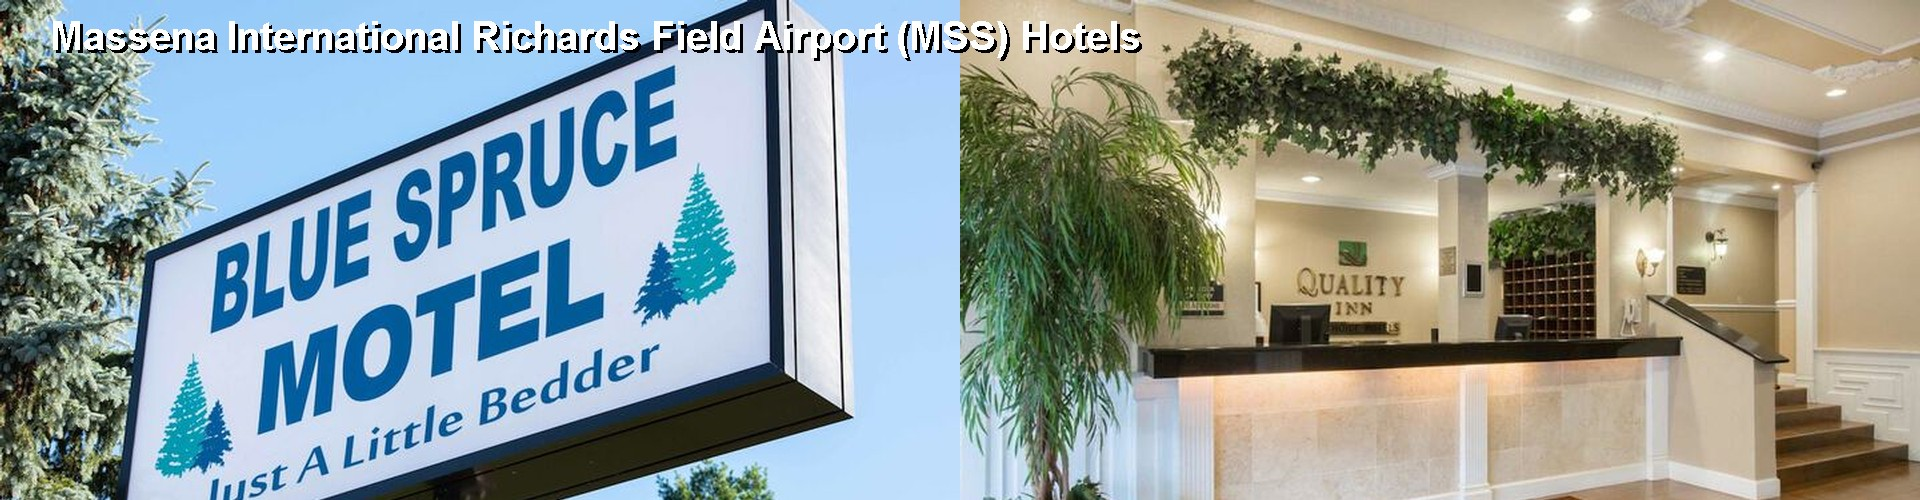 $39+ Hotels Near Massena International Richards Field Airport (MSS